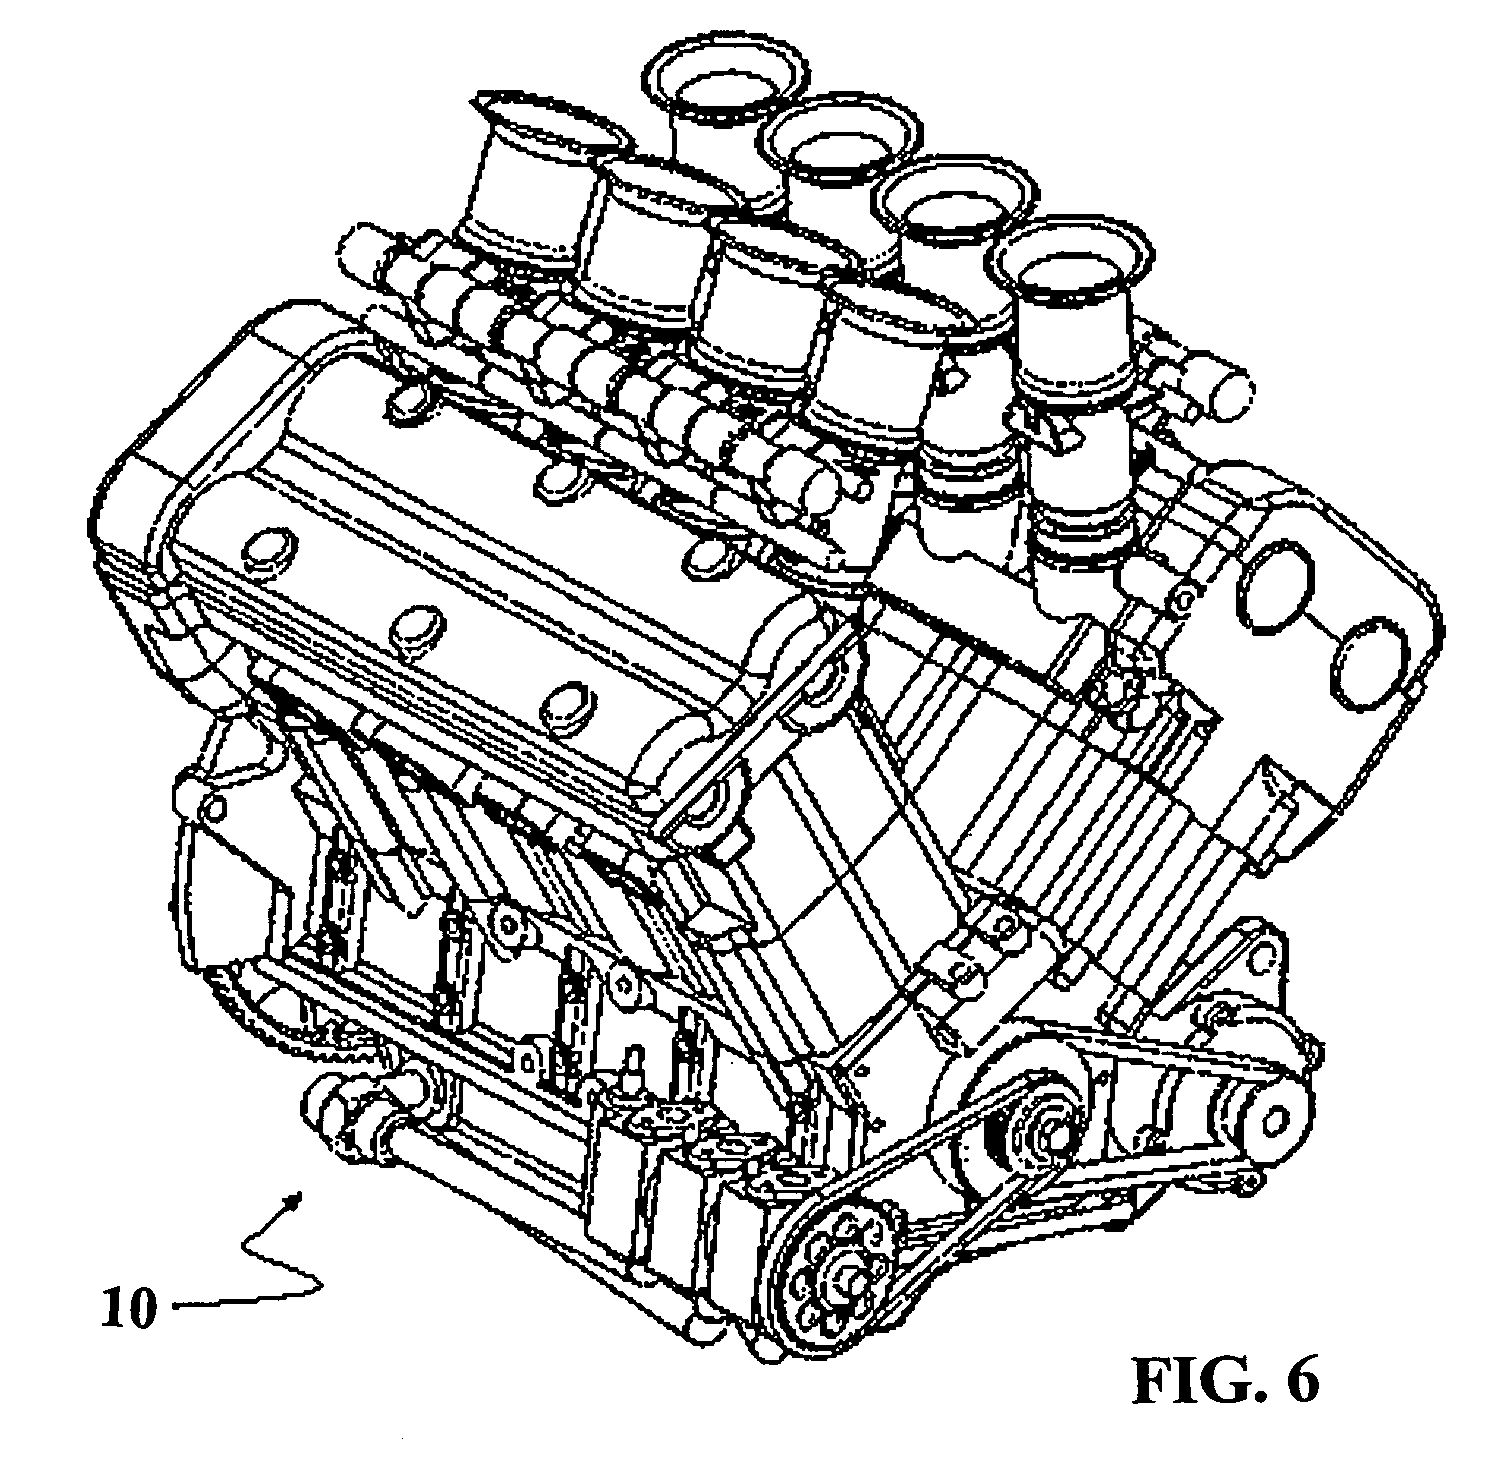 Flstf harley davidson parts diagram in addition 74 shovelhead wiring diagram furthermore harley davidson cylinder head